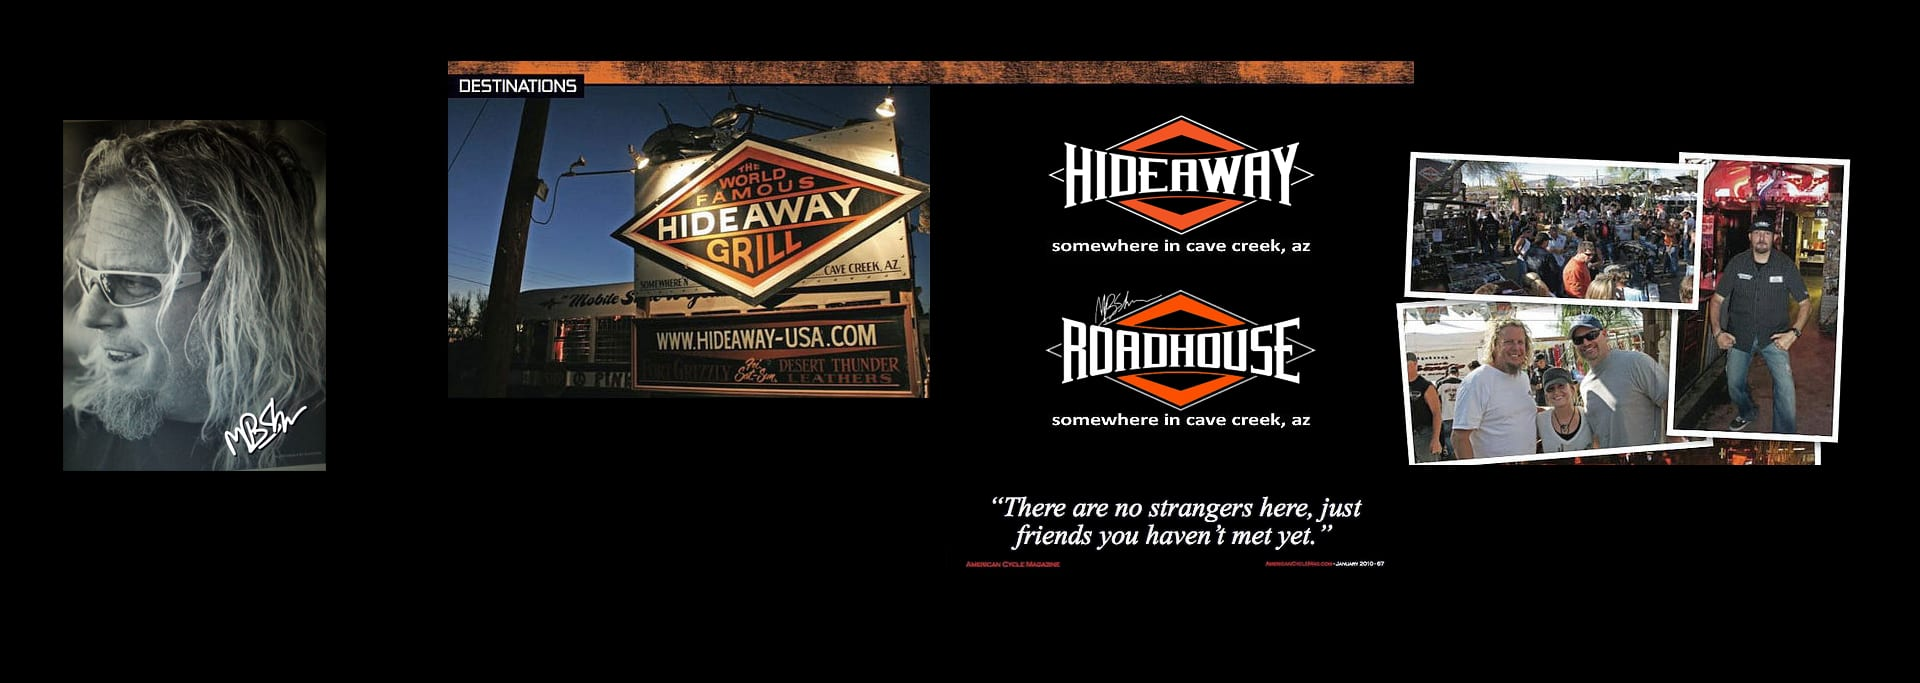 The Hideaway Grill - Somewhere near Cave Creek AZ